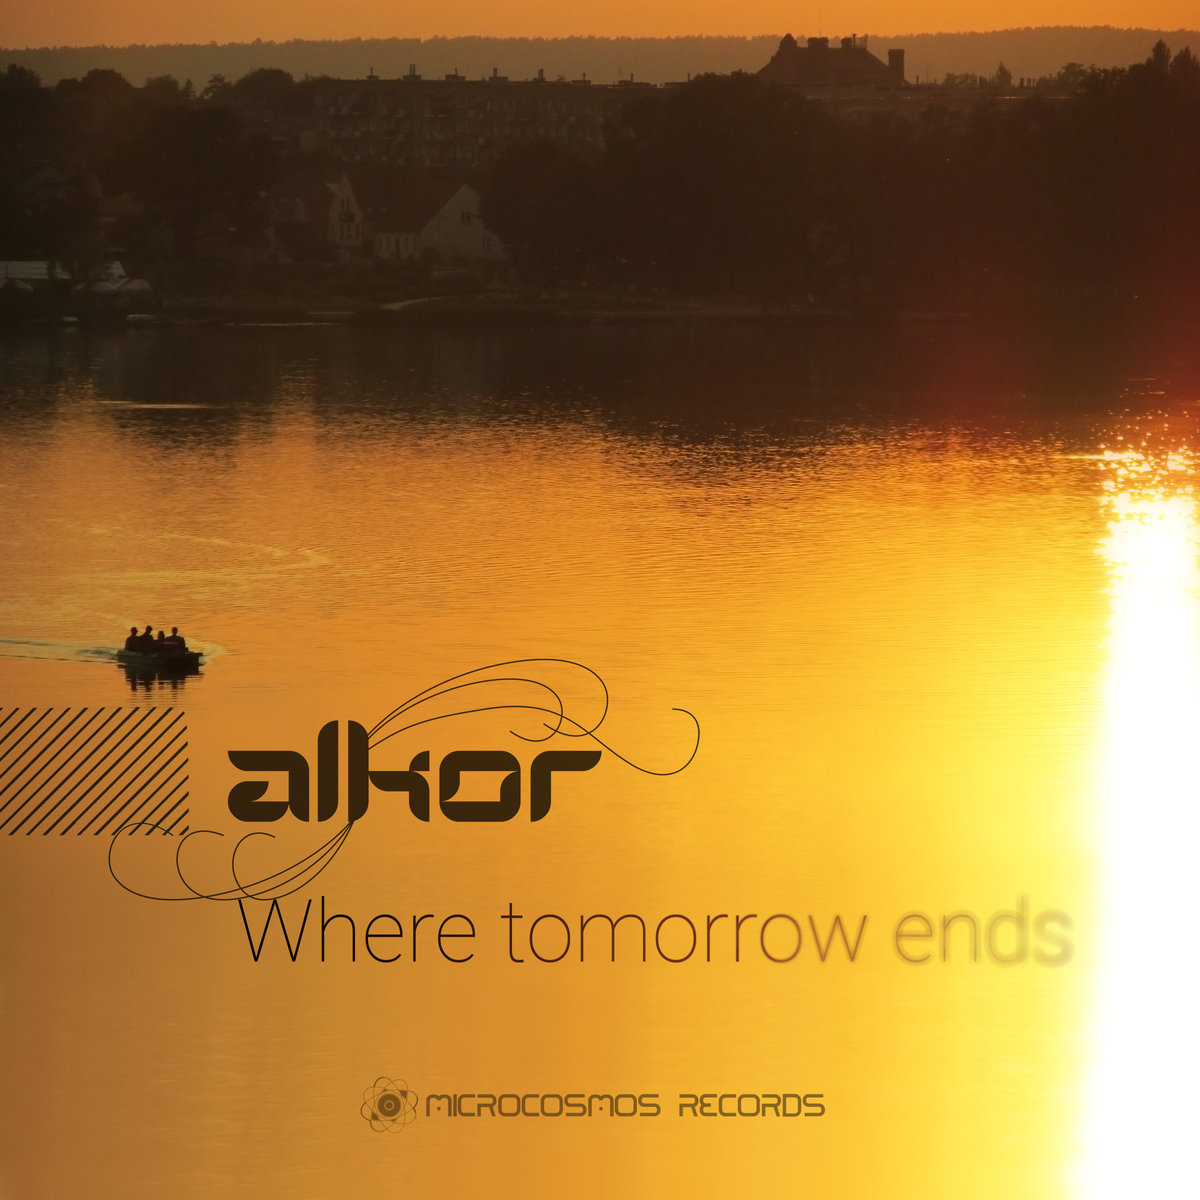 Alkor - Where Tomorrow Ends